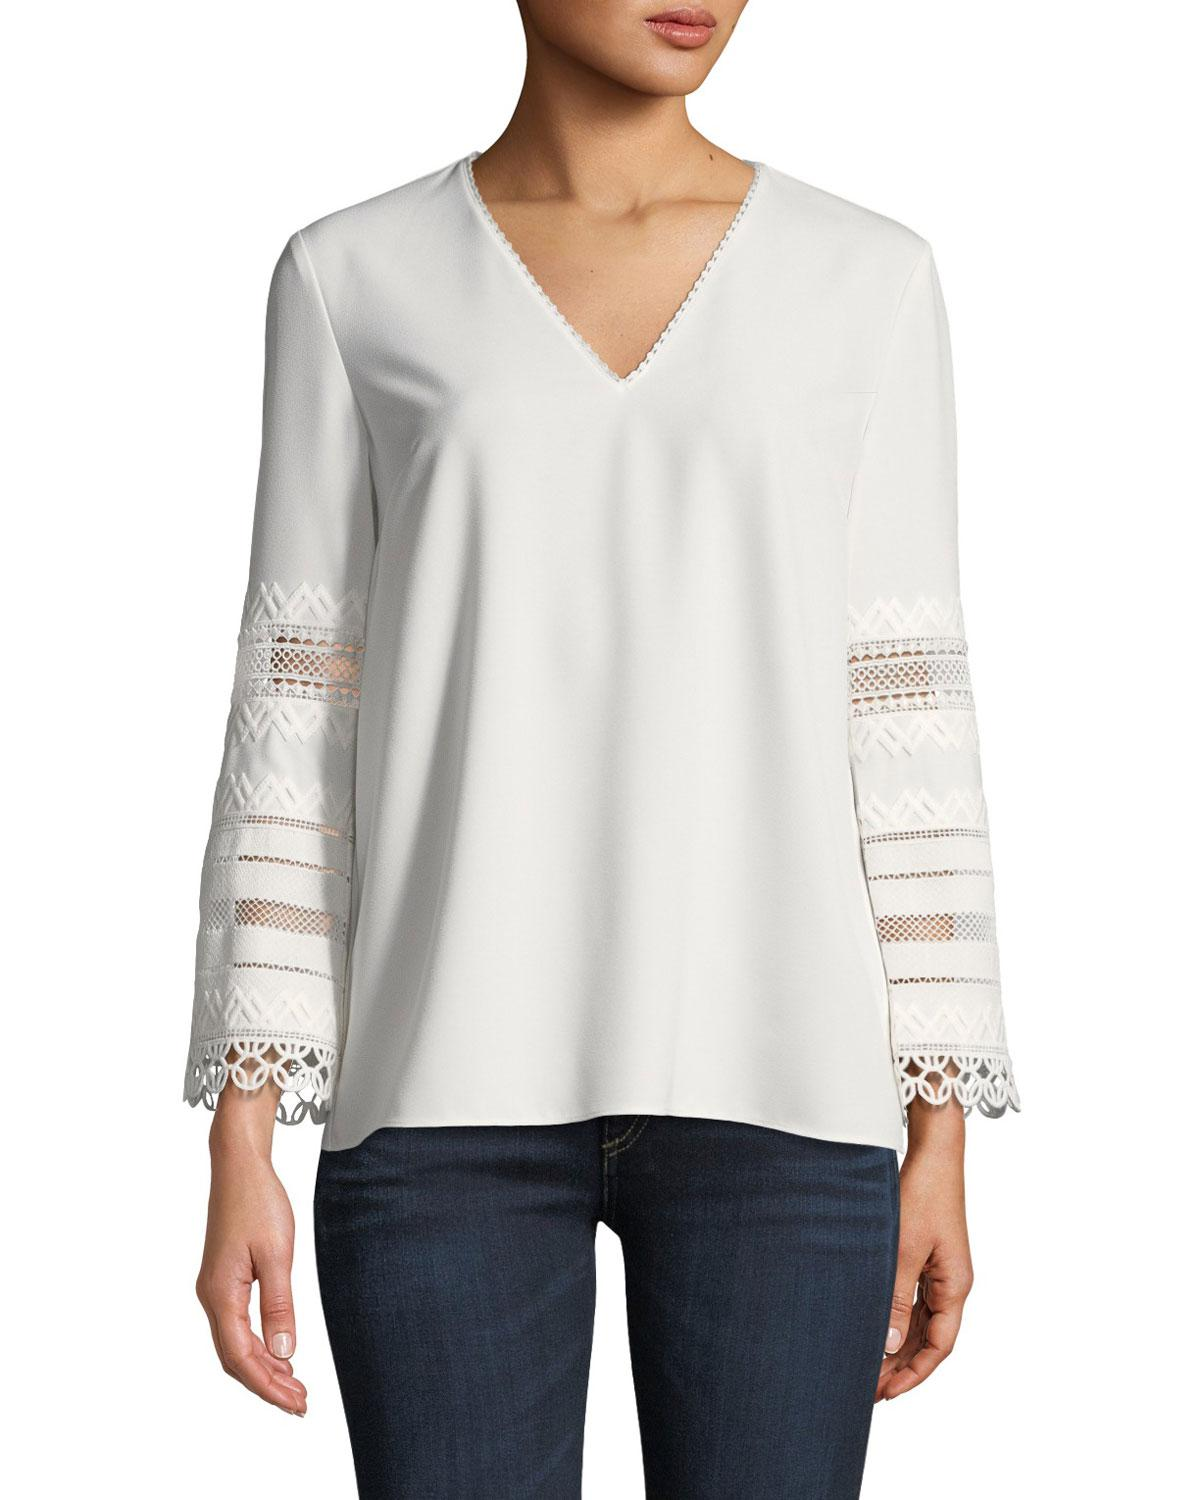 b2a2503dbcfde9 Lyst - Elie Tahari Elvira Eyelet-lace-sleeve Blouse in White